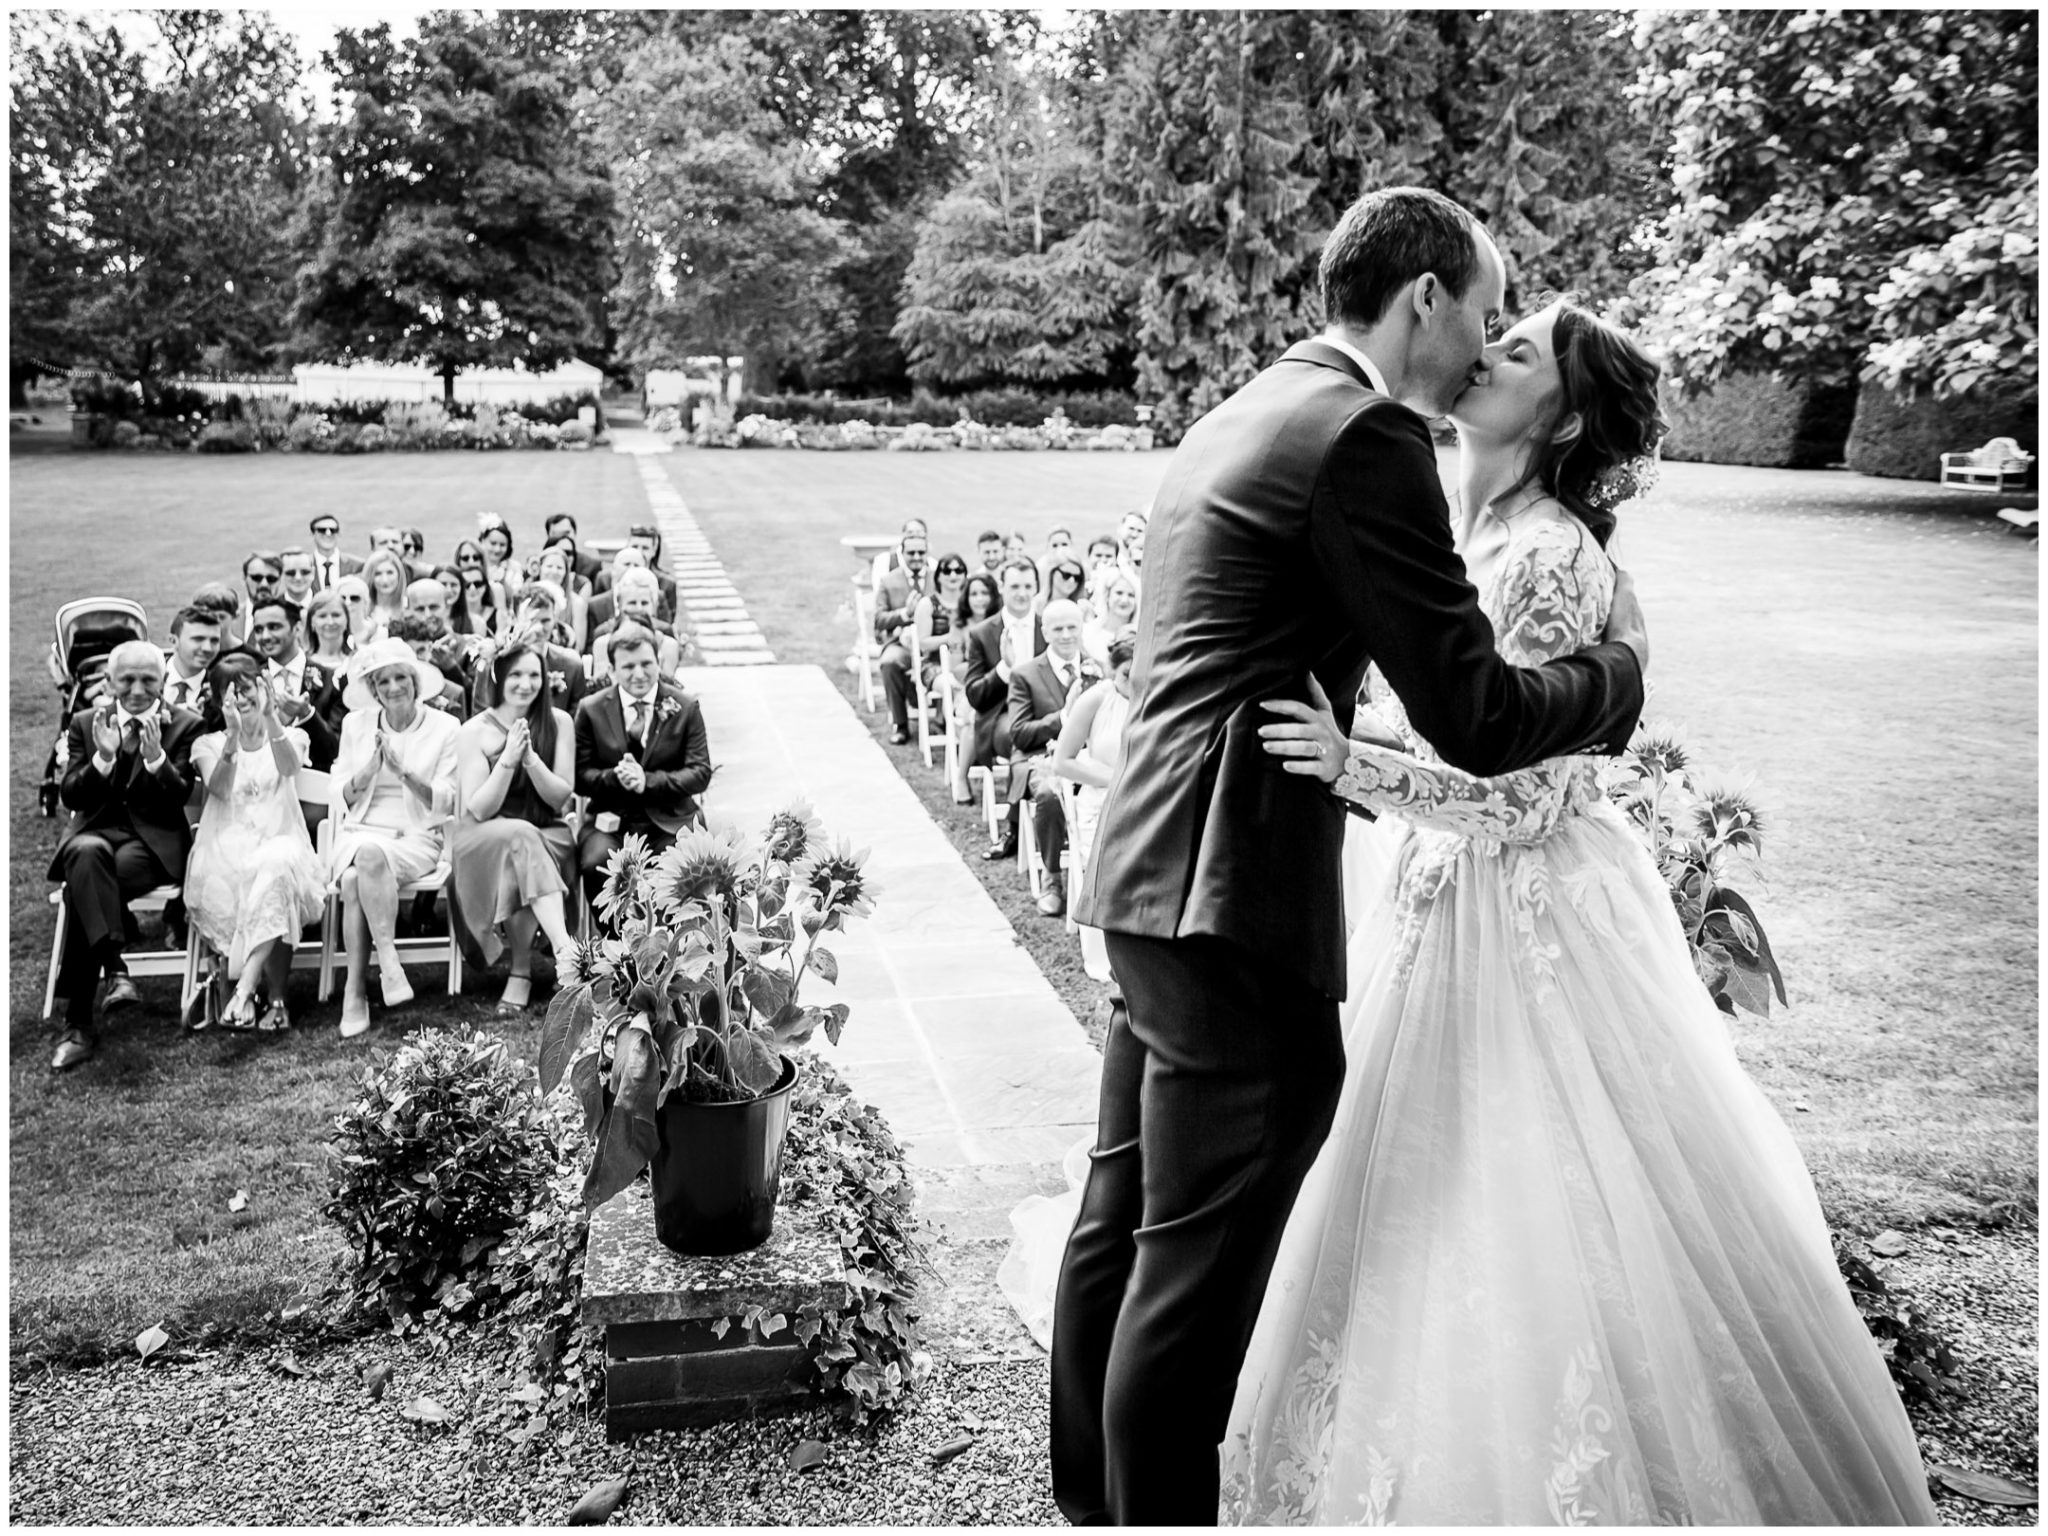 The couple kiss for the first time as husband and wife